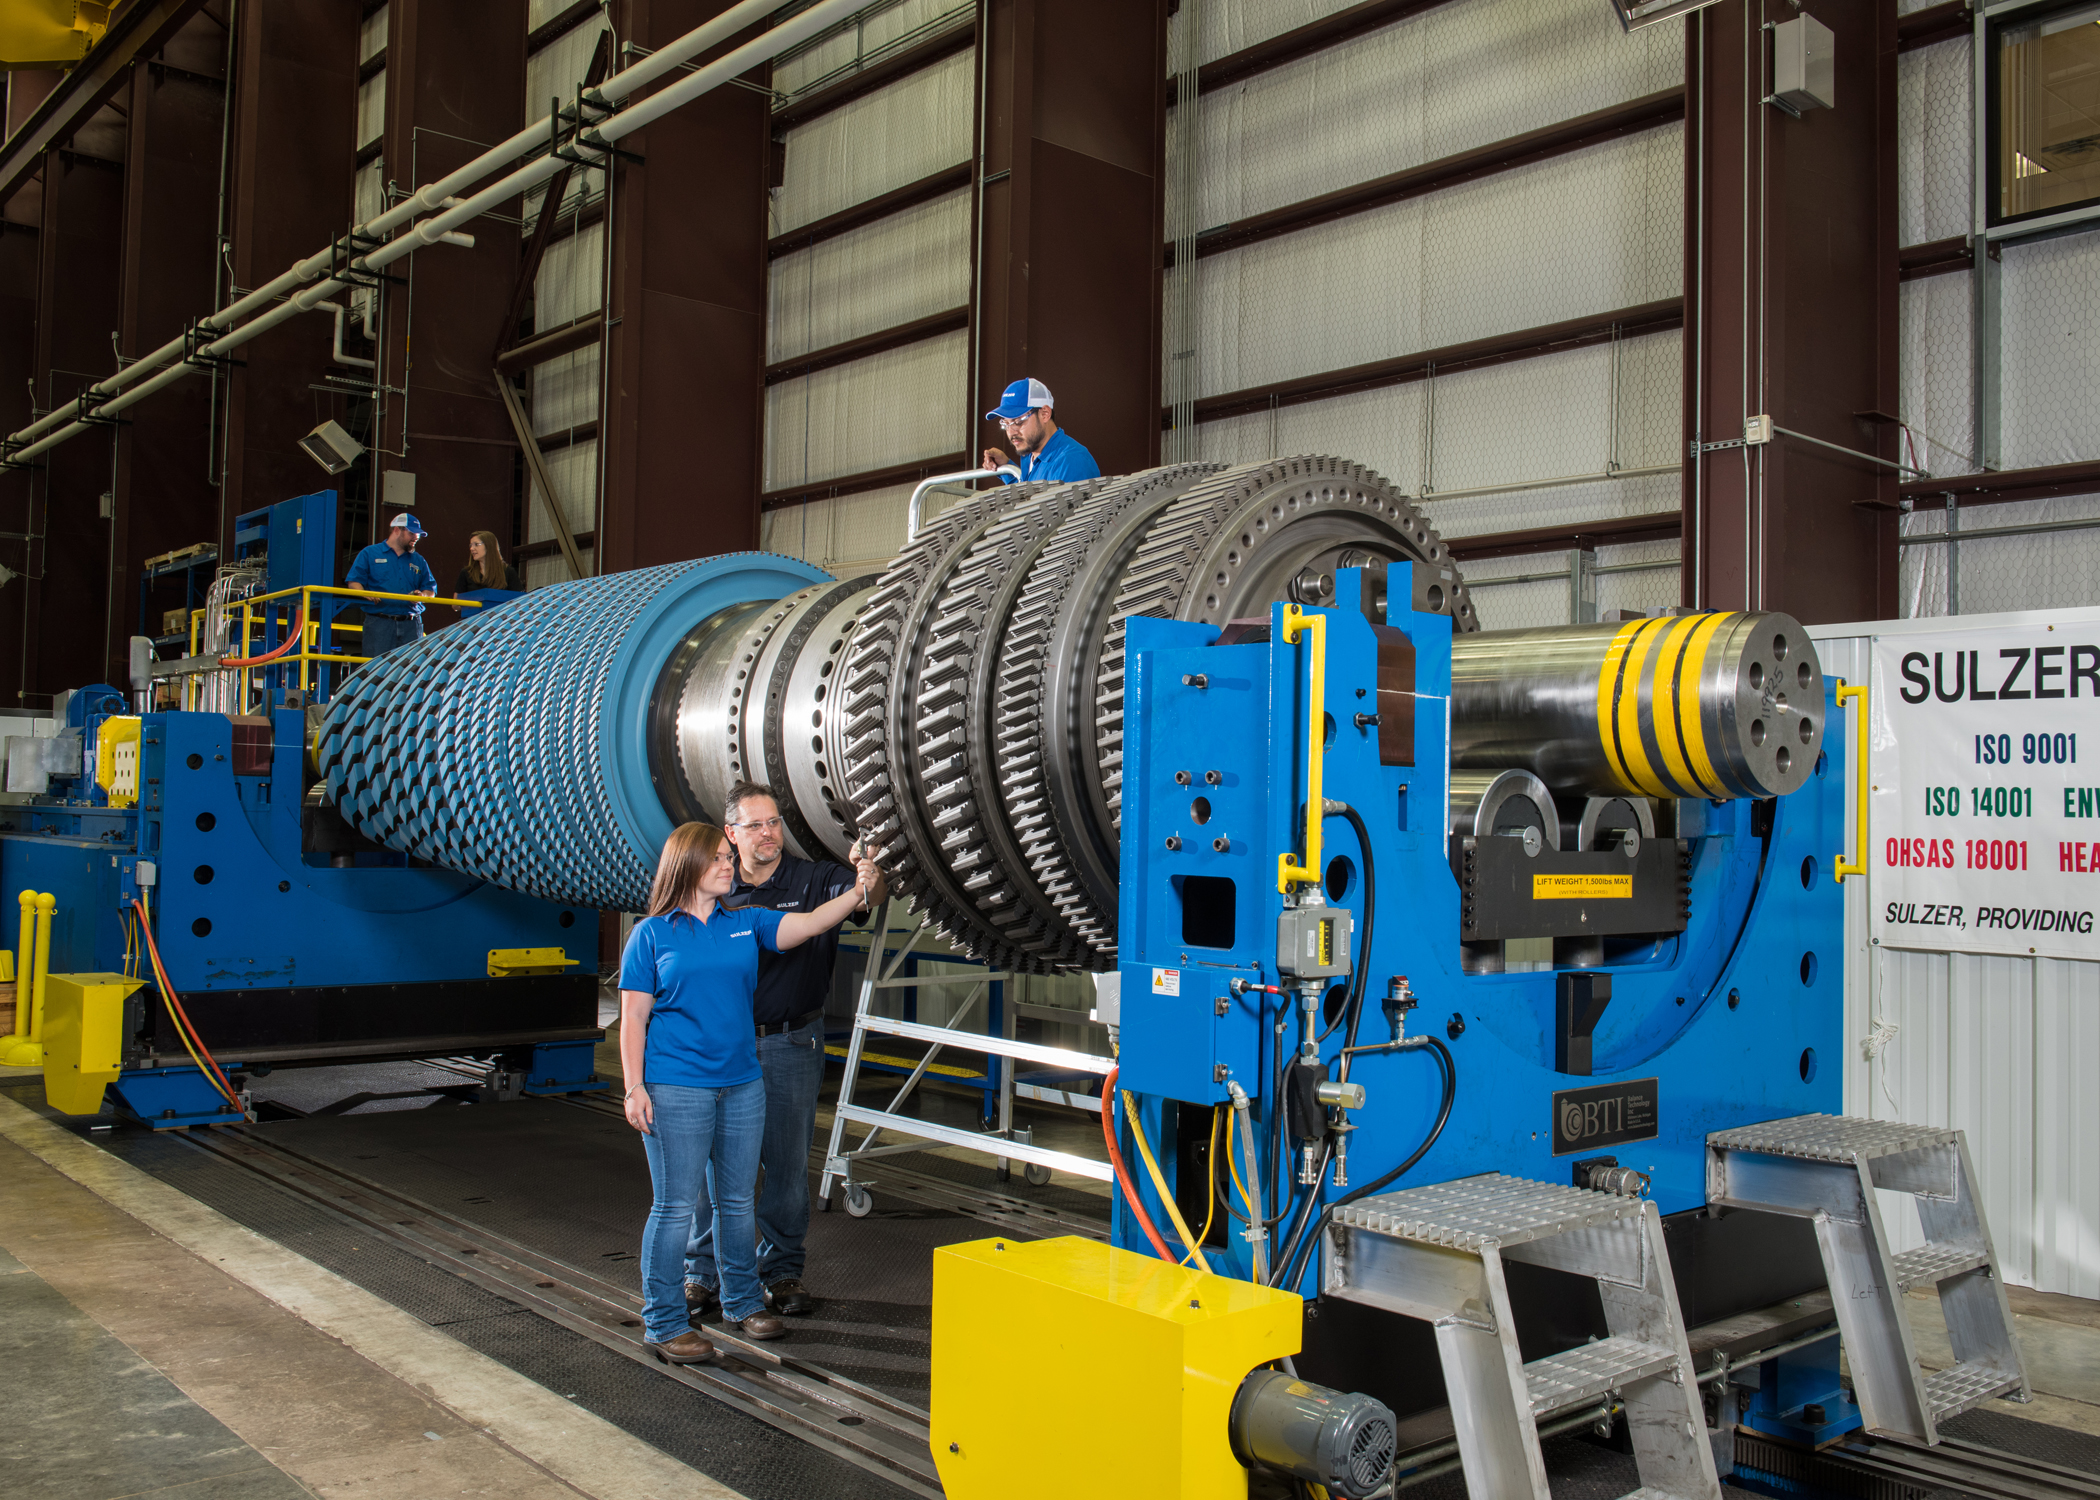 Industrial gas turbine rotor repair – What does it take